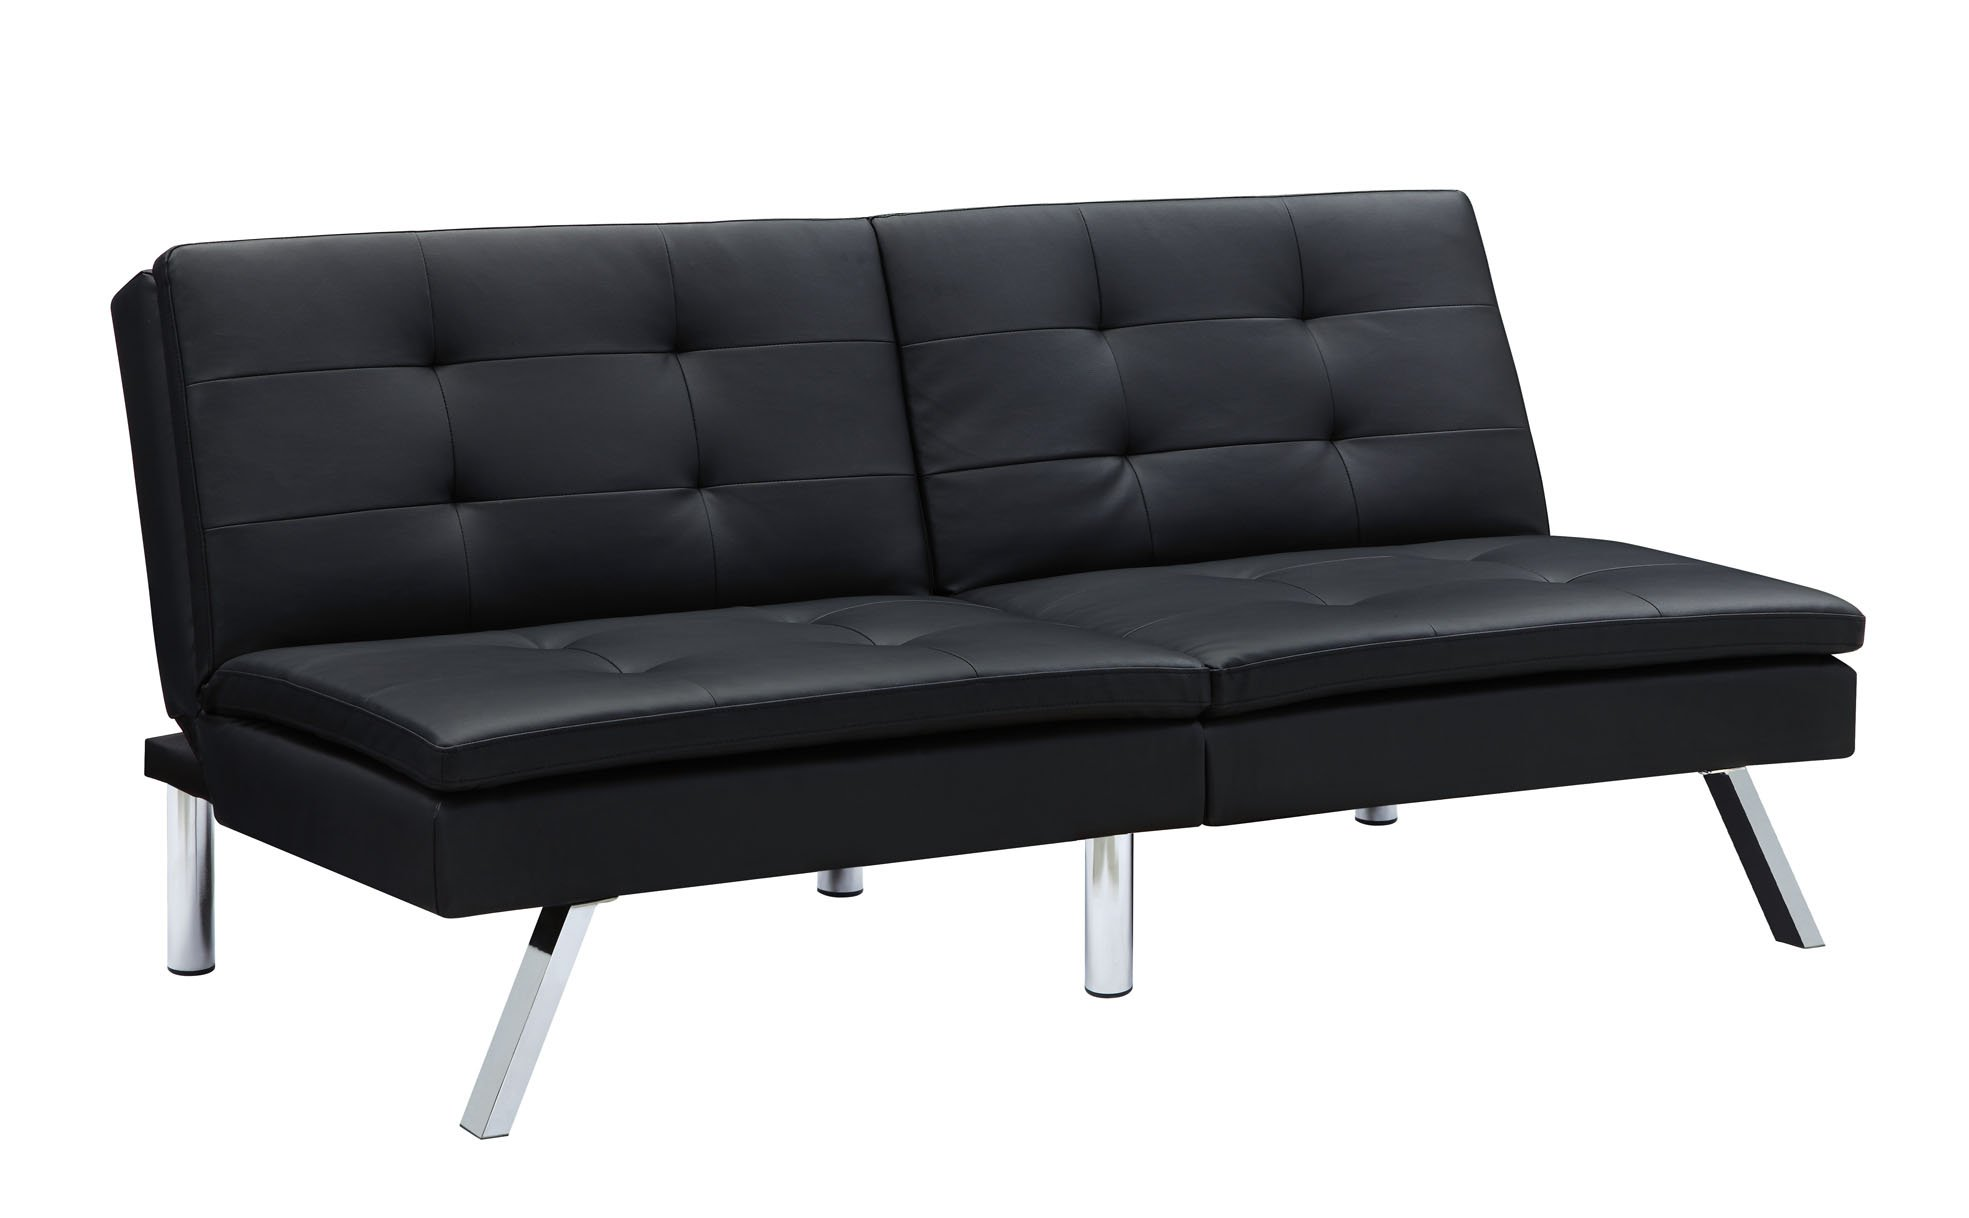 Medium image of dhp chelsea convertible futon with chrome legs multi position back black